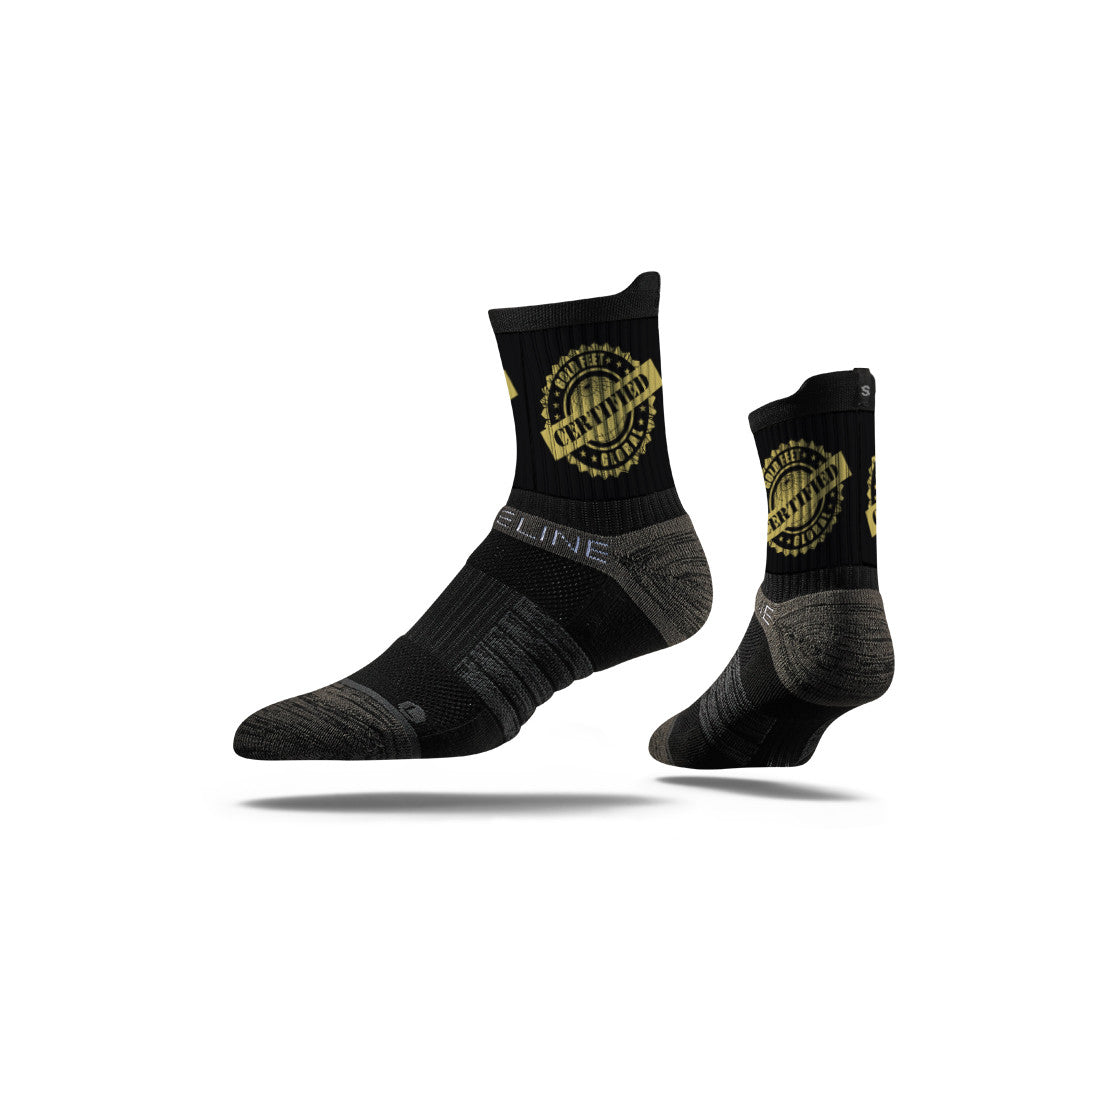 Gold Feet Global Black Mid